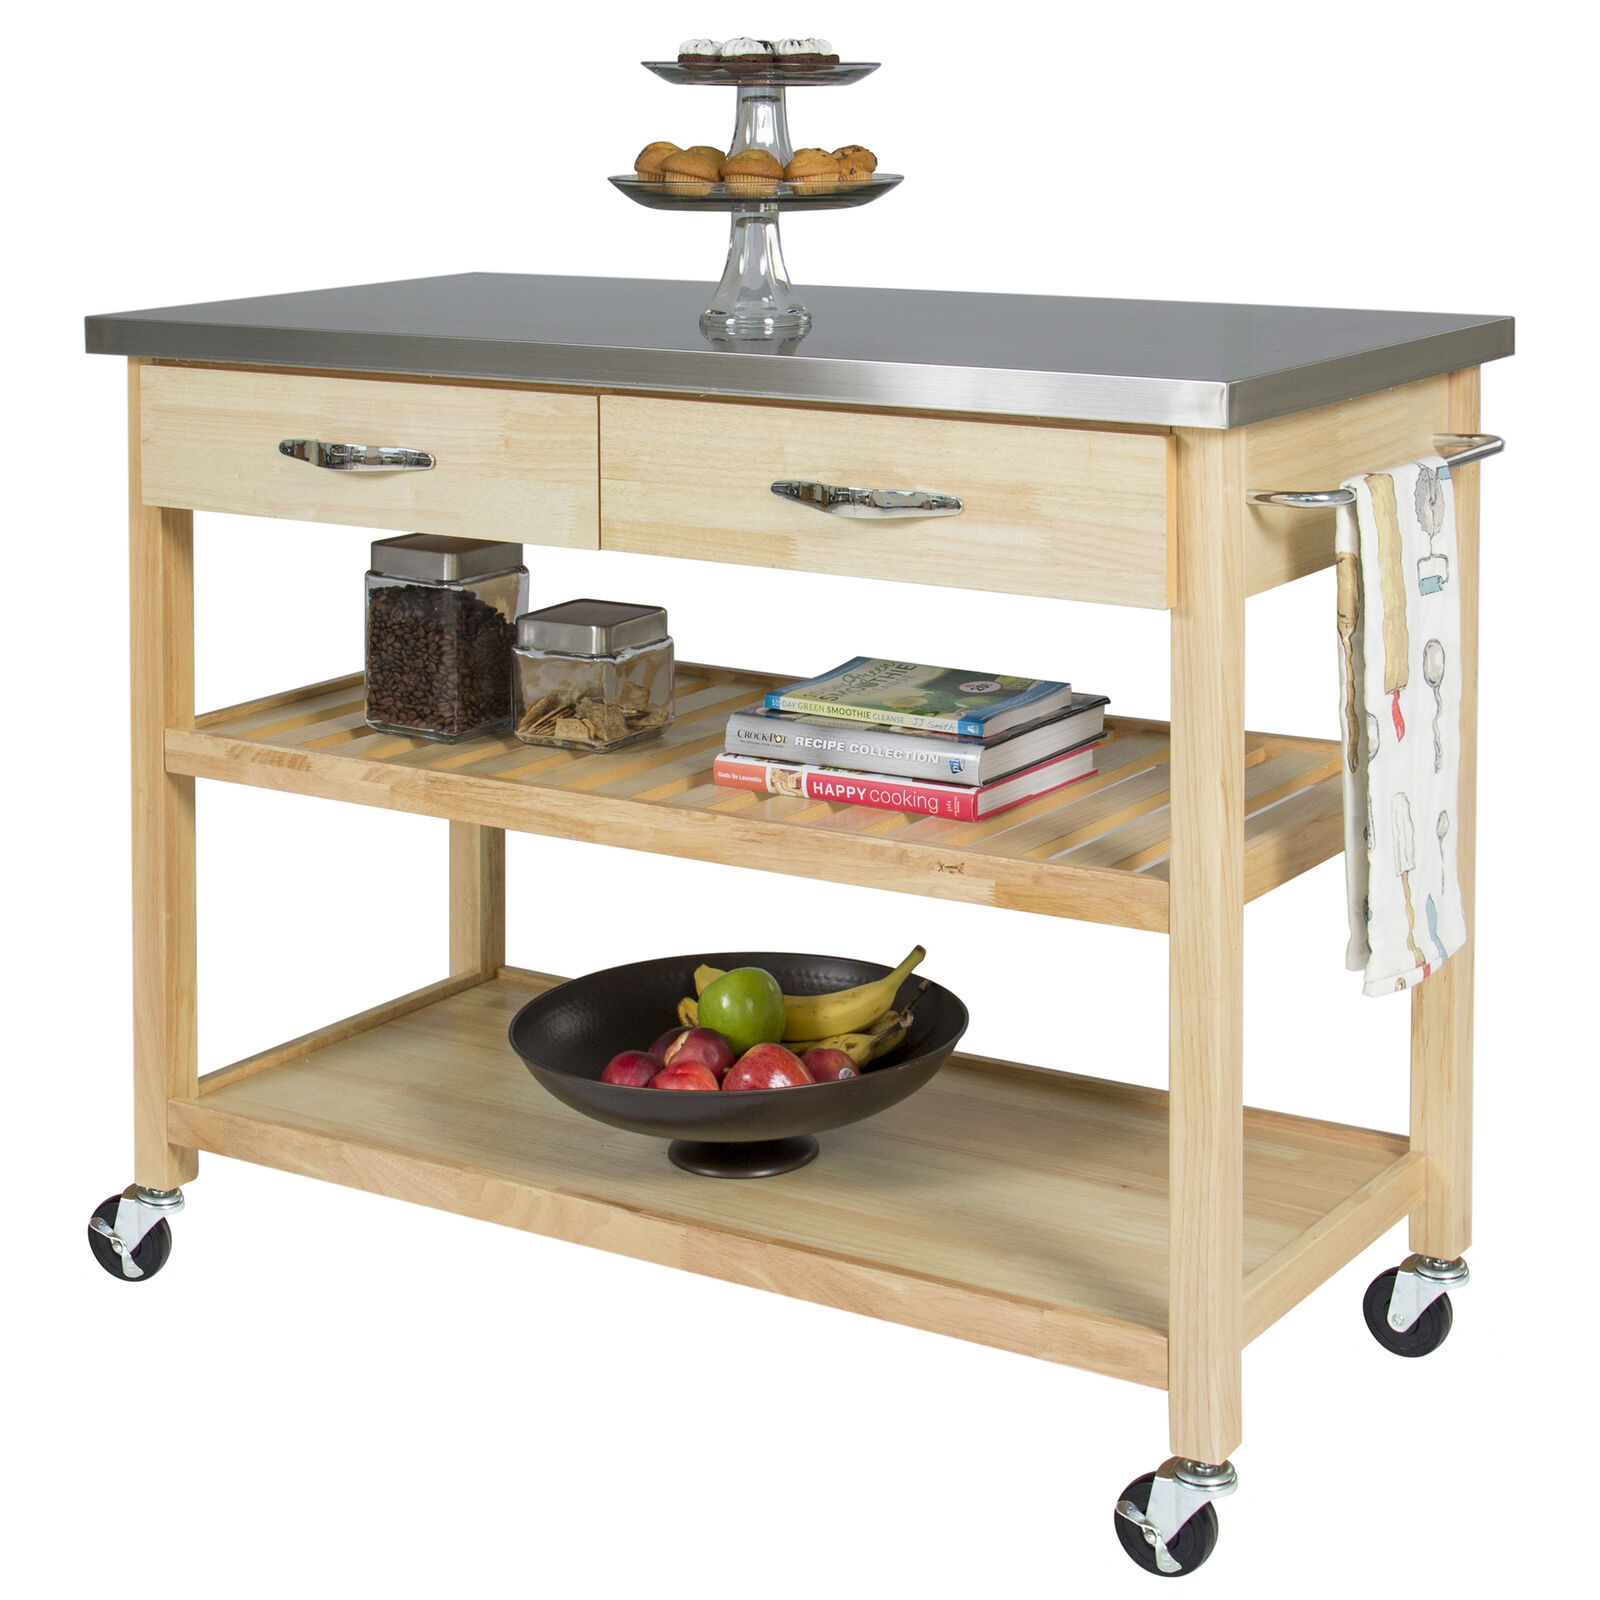 Best Choice Products Natural Wood Mobile Kitchen | eBay